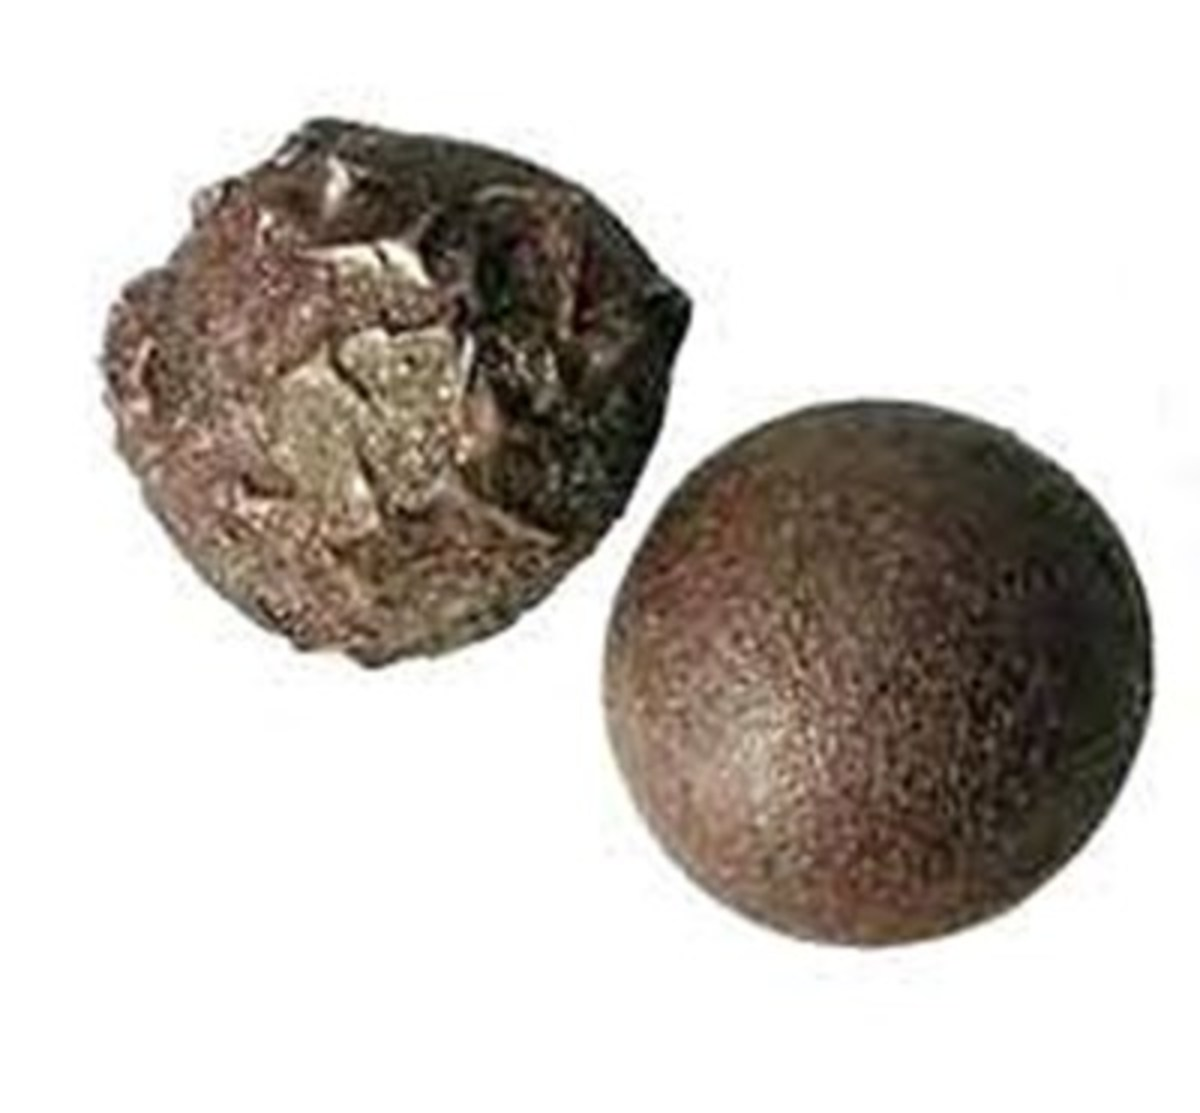 Boji stones typically come in two forms, the male and female. The male form has sharp, obtrusive edges while the female form as smooth, rounded edges.